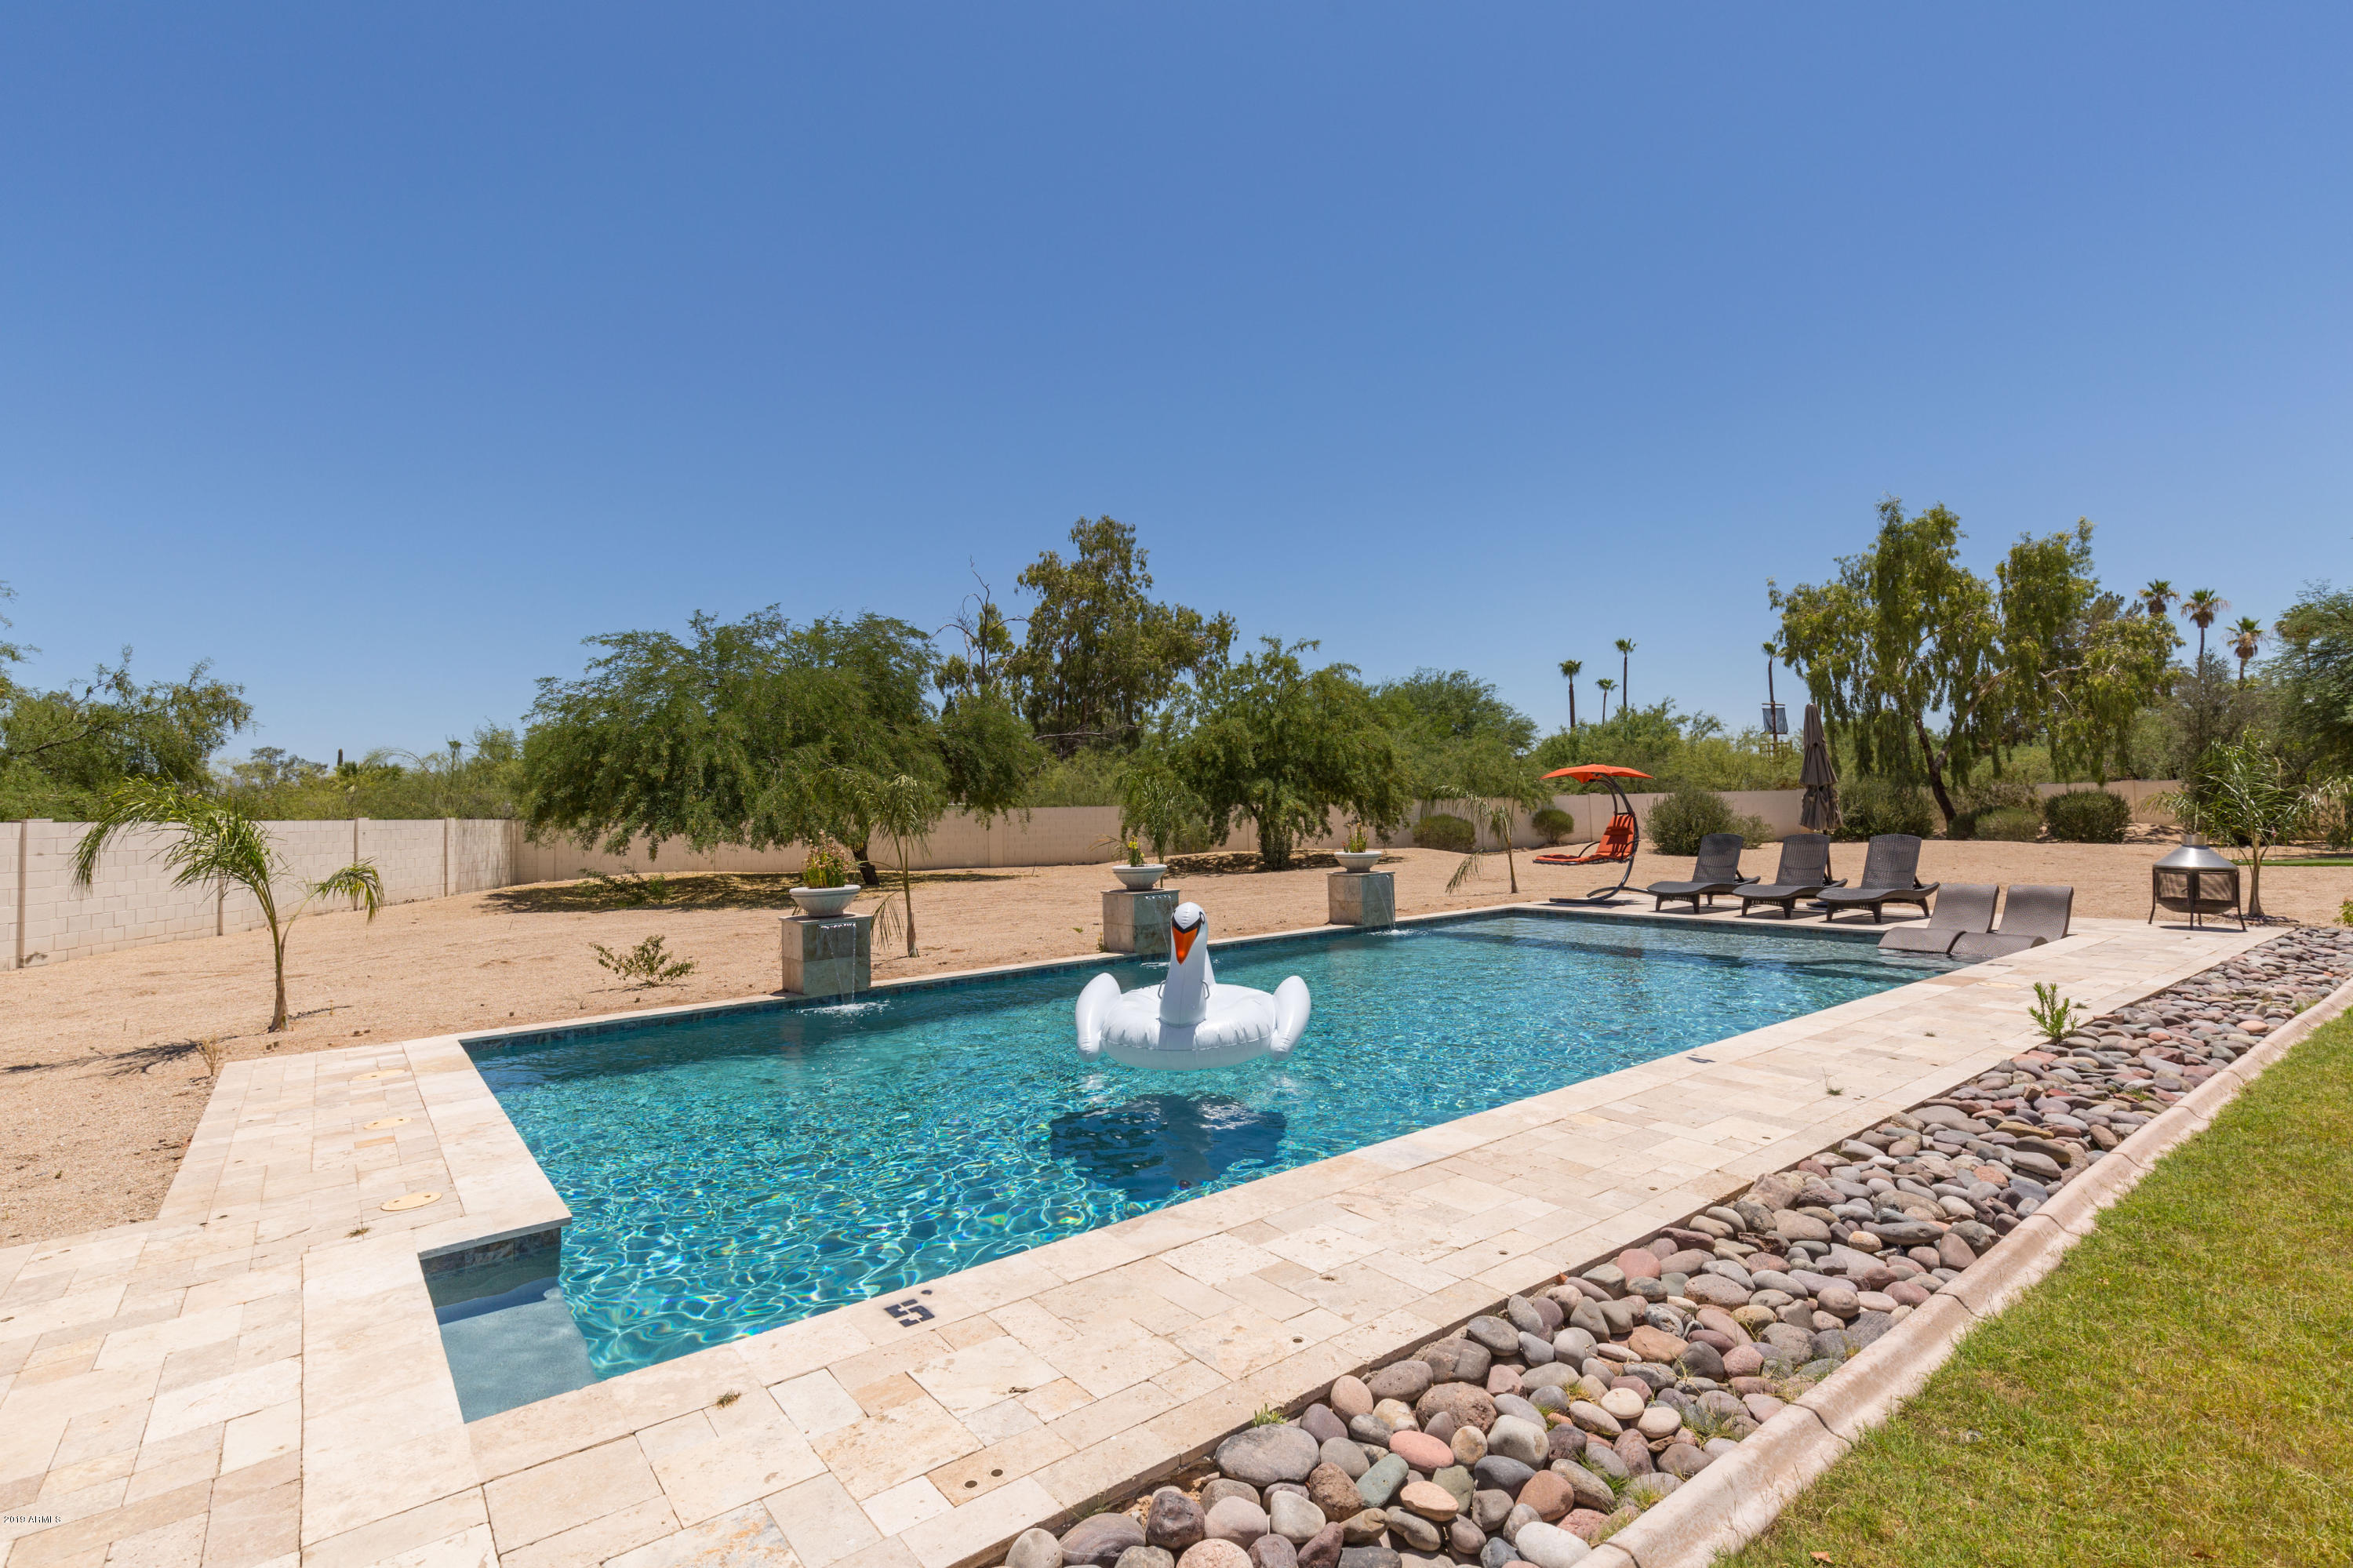 9827 N 57TH Street, Paradise Valley, AZ 85253, 6 Bedrooms Bedrooms, ,Residential Lease,For Rent,9827 N 57TH Street,5971974